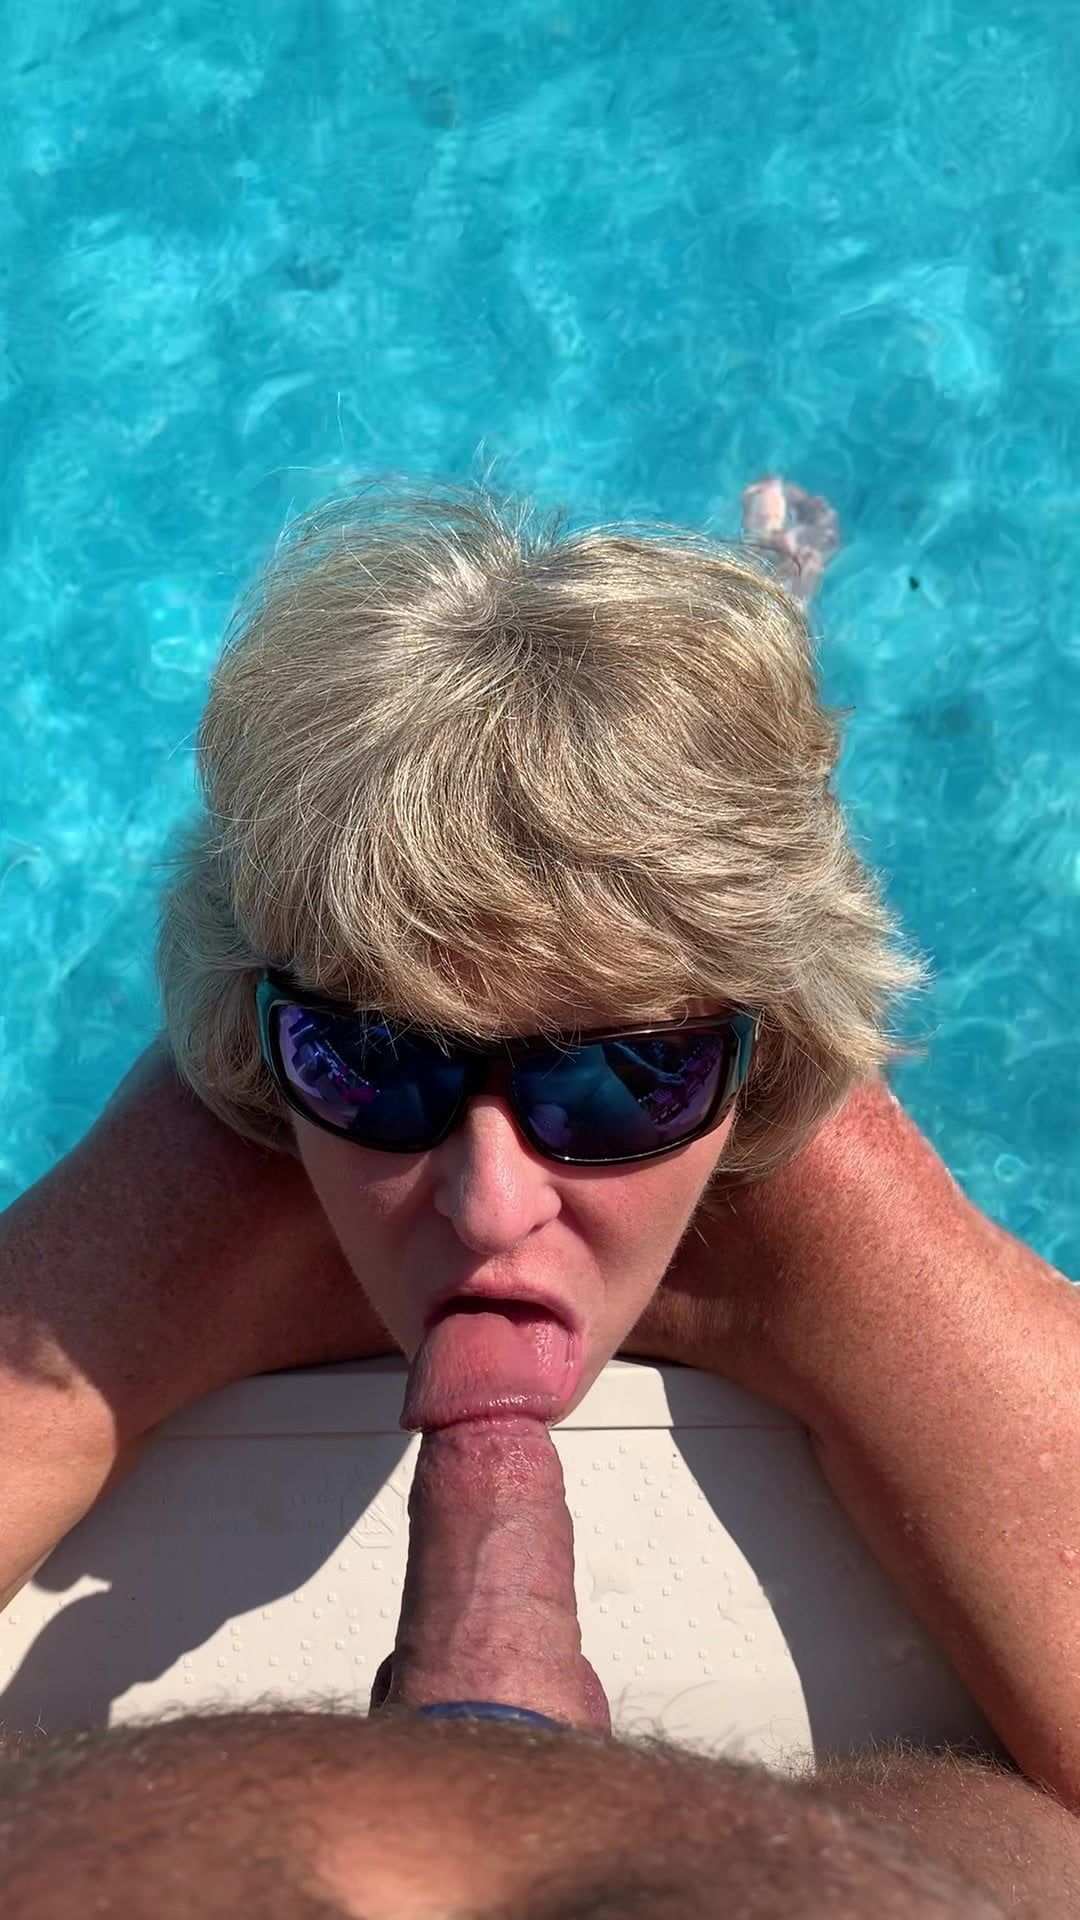 Blowjob by the pool